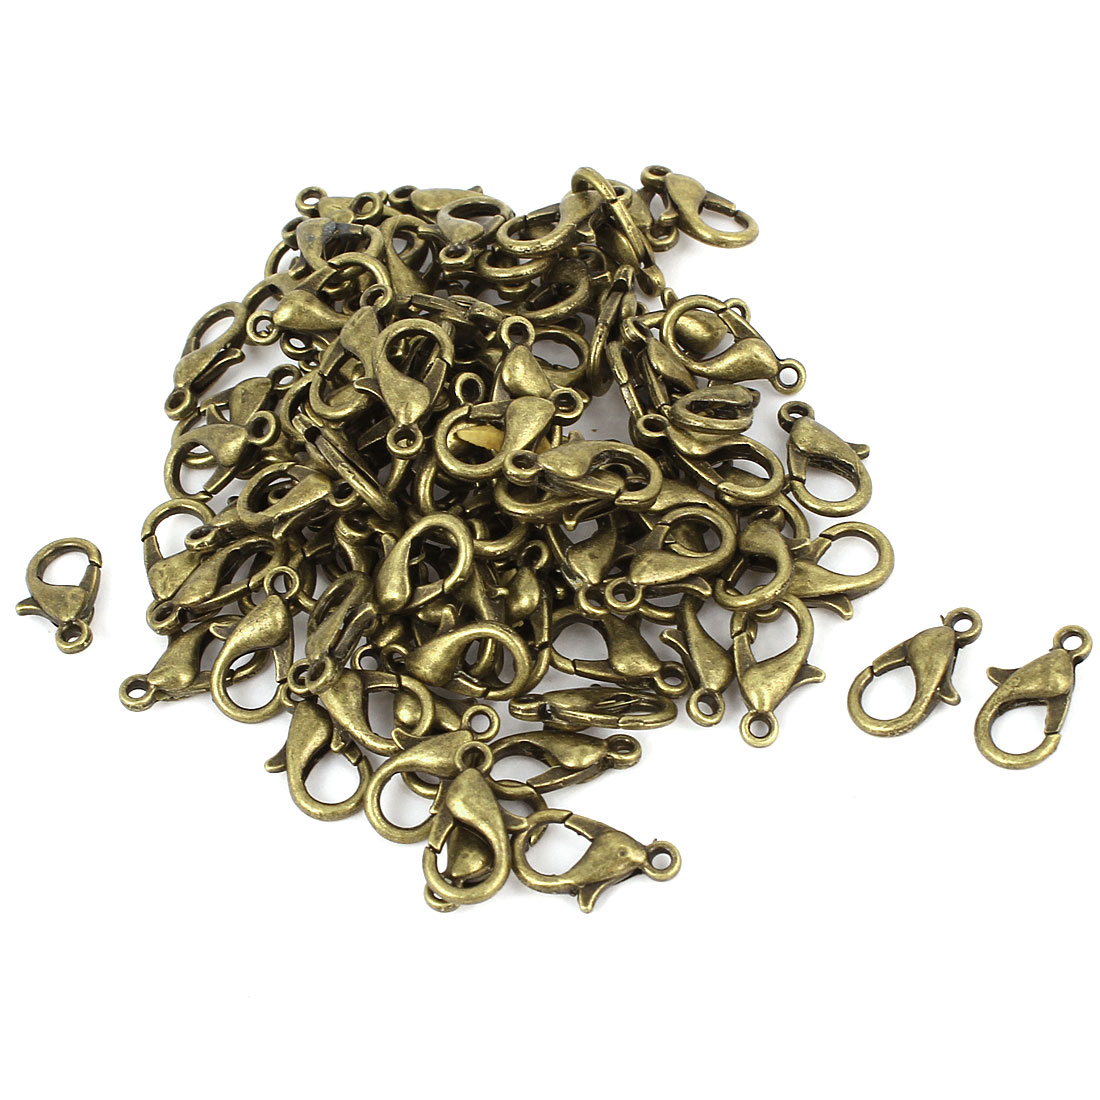 Bracelet Chain Connectors Bronze Tone Lobster Claw Clasps 12 x 6mm 100 Pcs